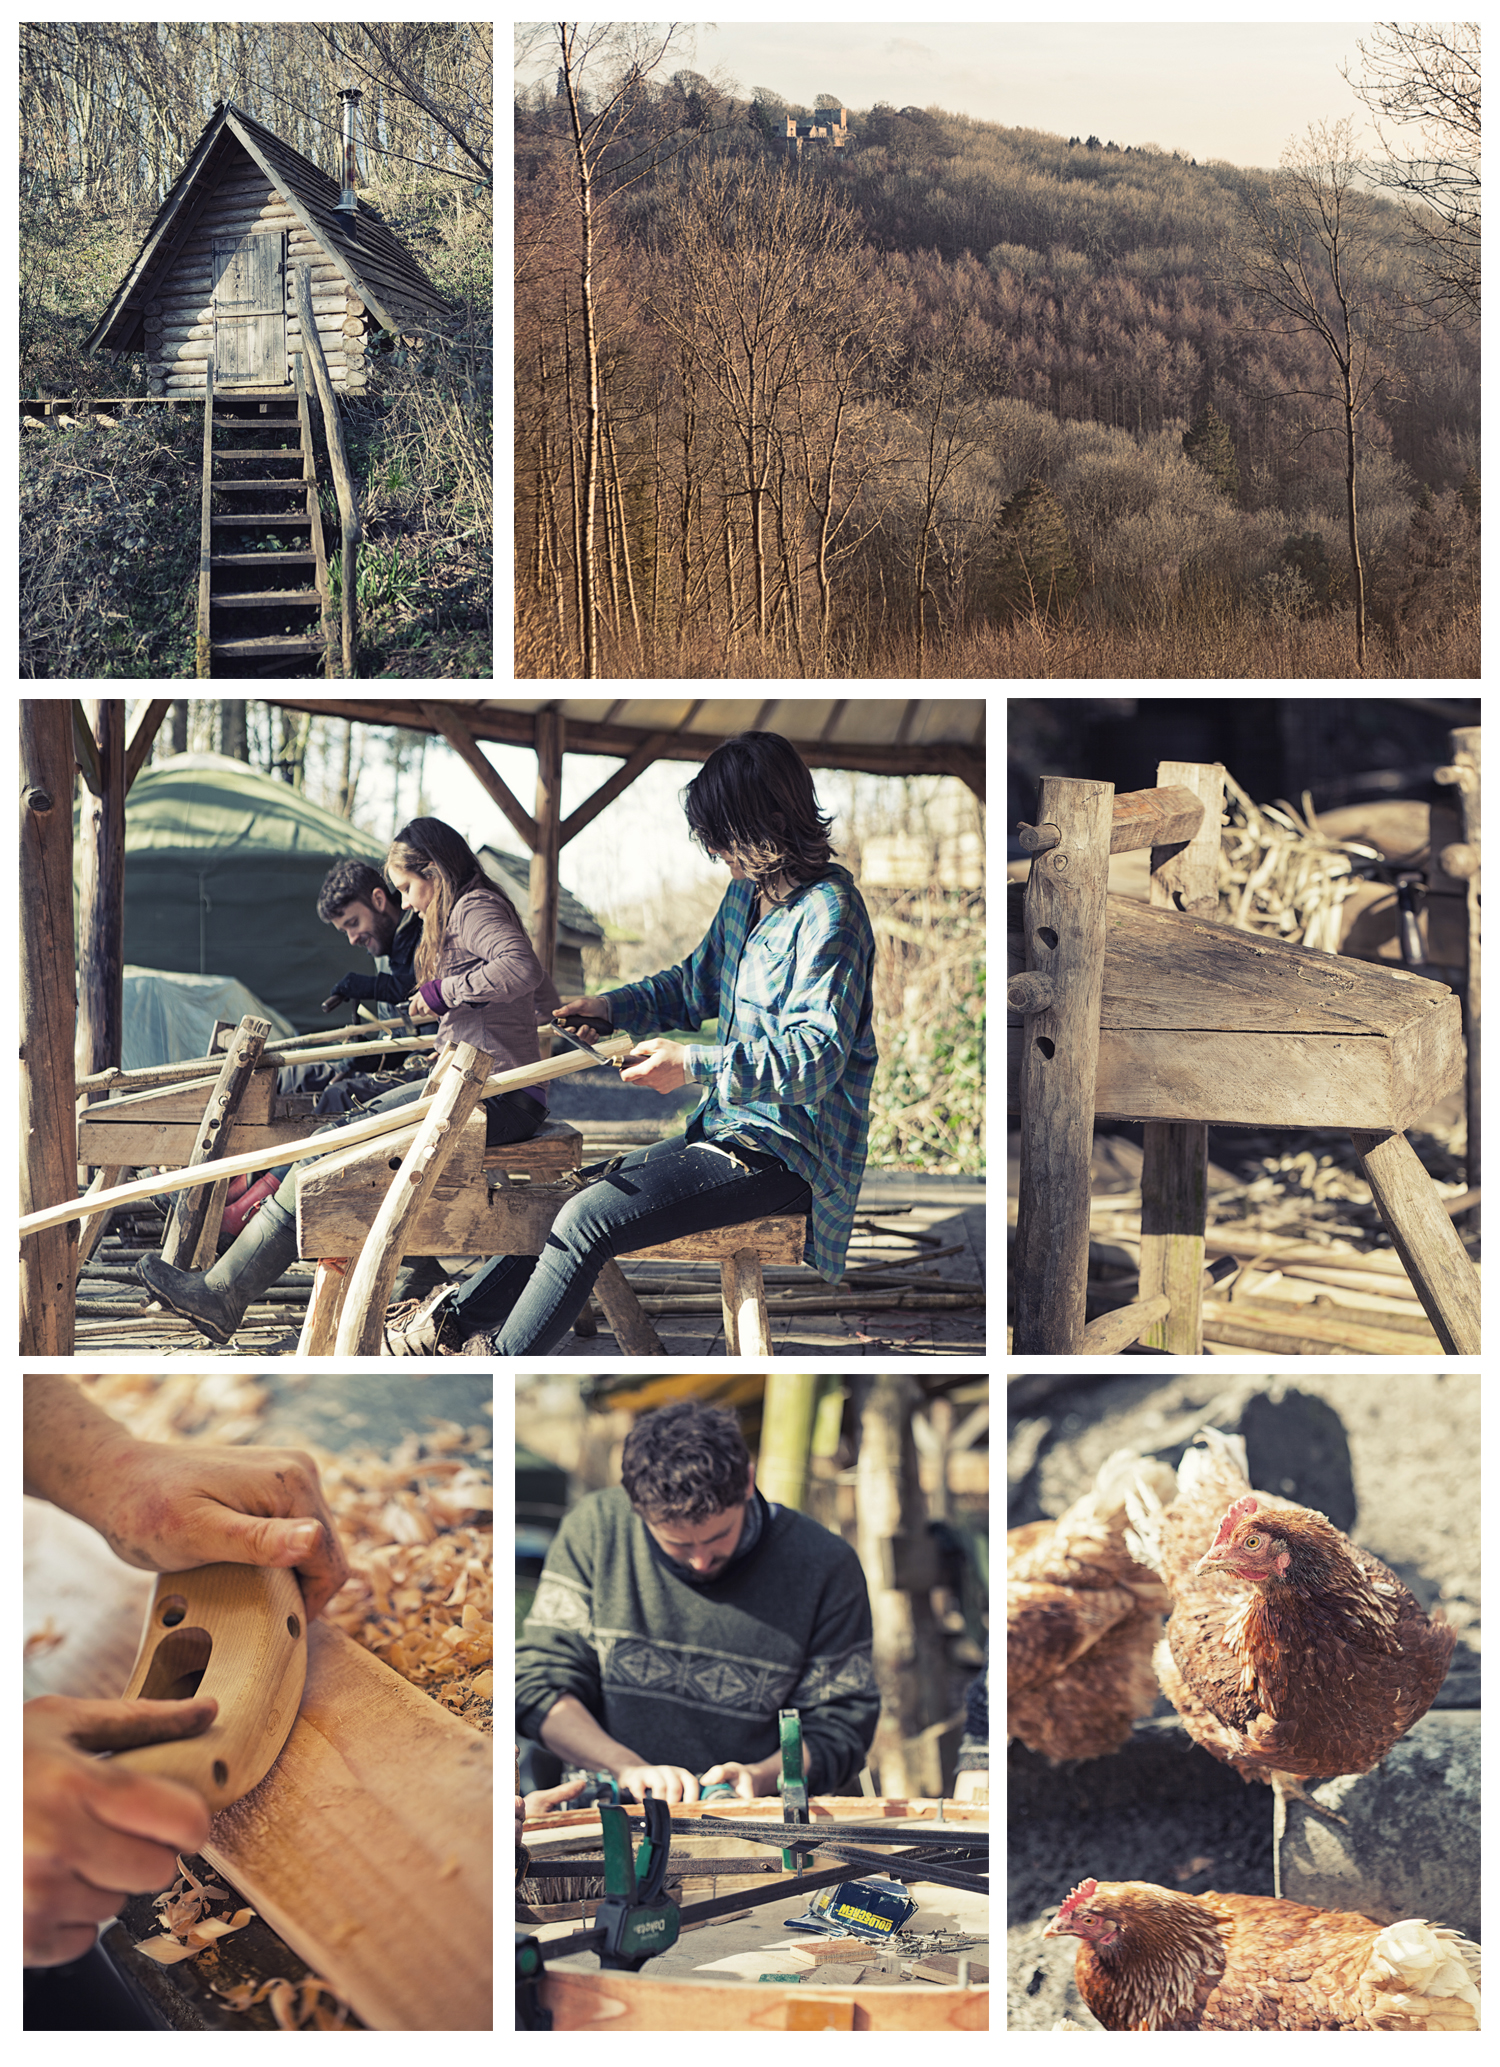 Apprentices and course attendees practise woodland craft at the Cherry Wood Project near Bath, UK